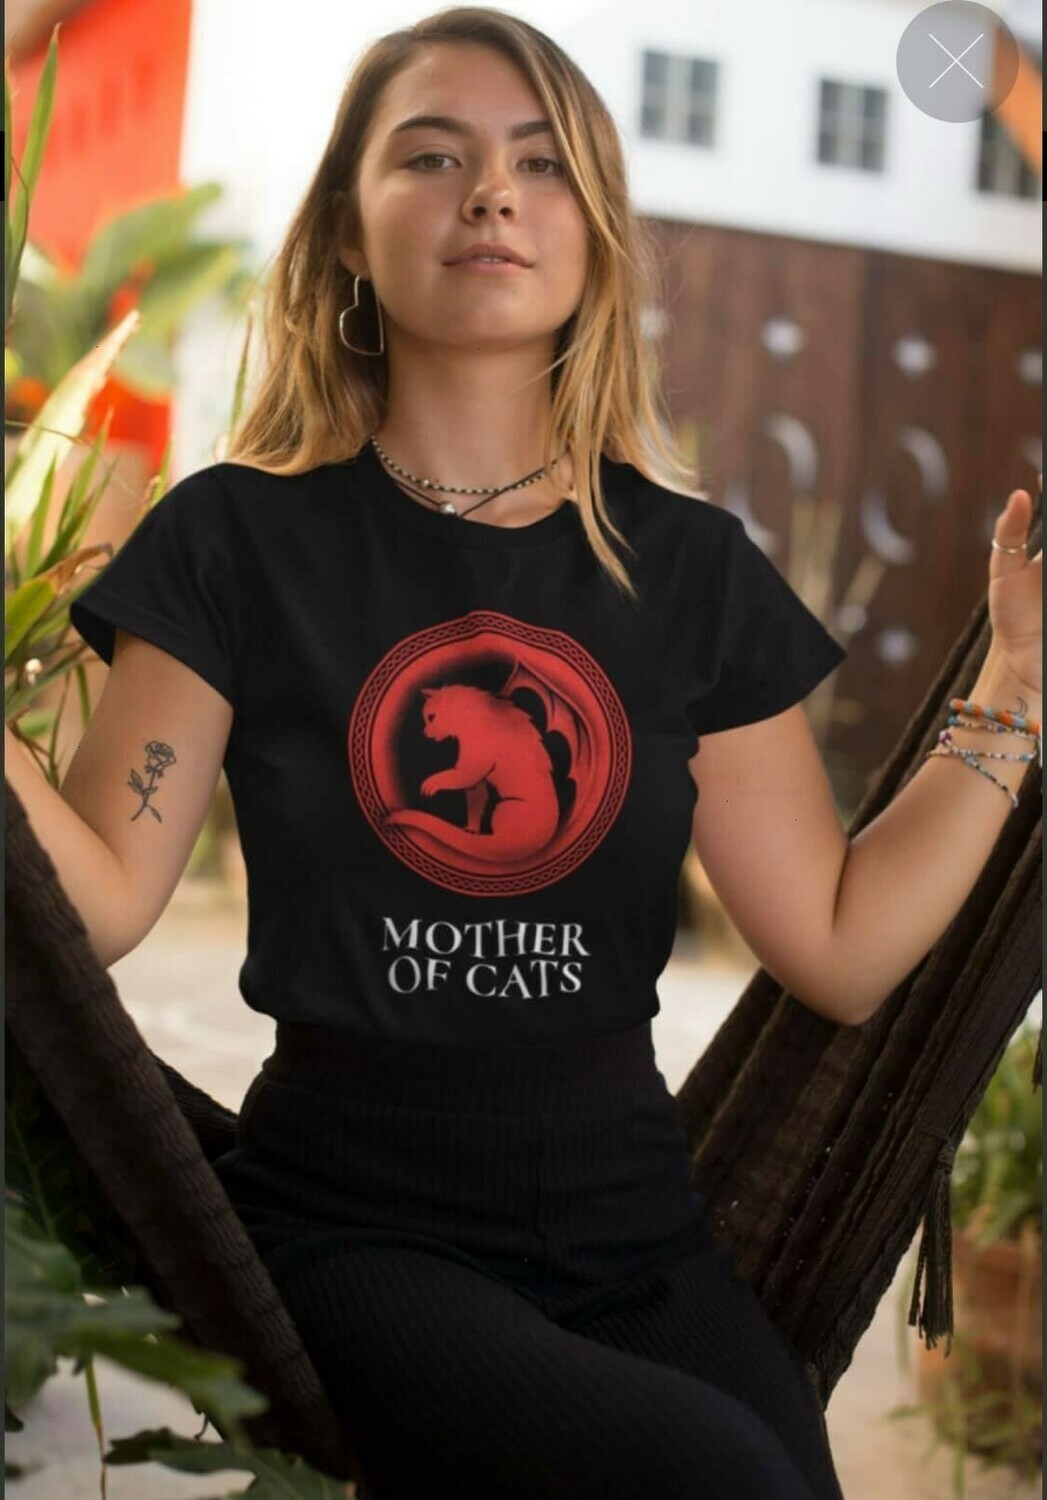 Beautiful Mother Of Cats Game of Thrones House Targaryen Inspired Gift For Her Mom Mother Grandma Unisex T-Shirt Hoodie Sweatshirt Sweater Plus Size for Ladies Women Men Kids Youth Gifts Tee Jolly